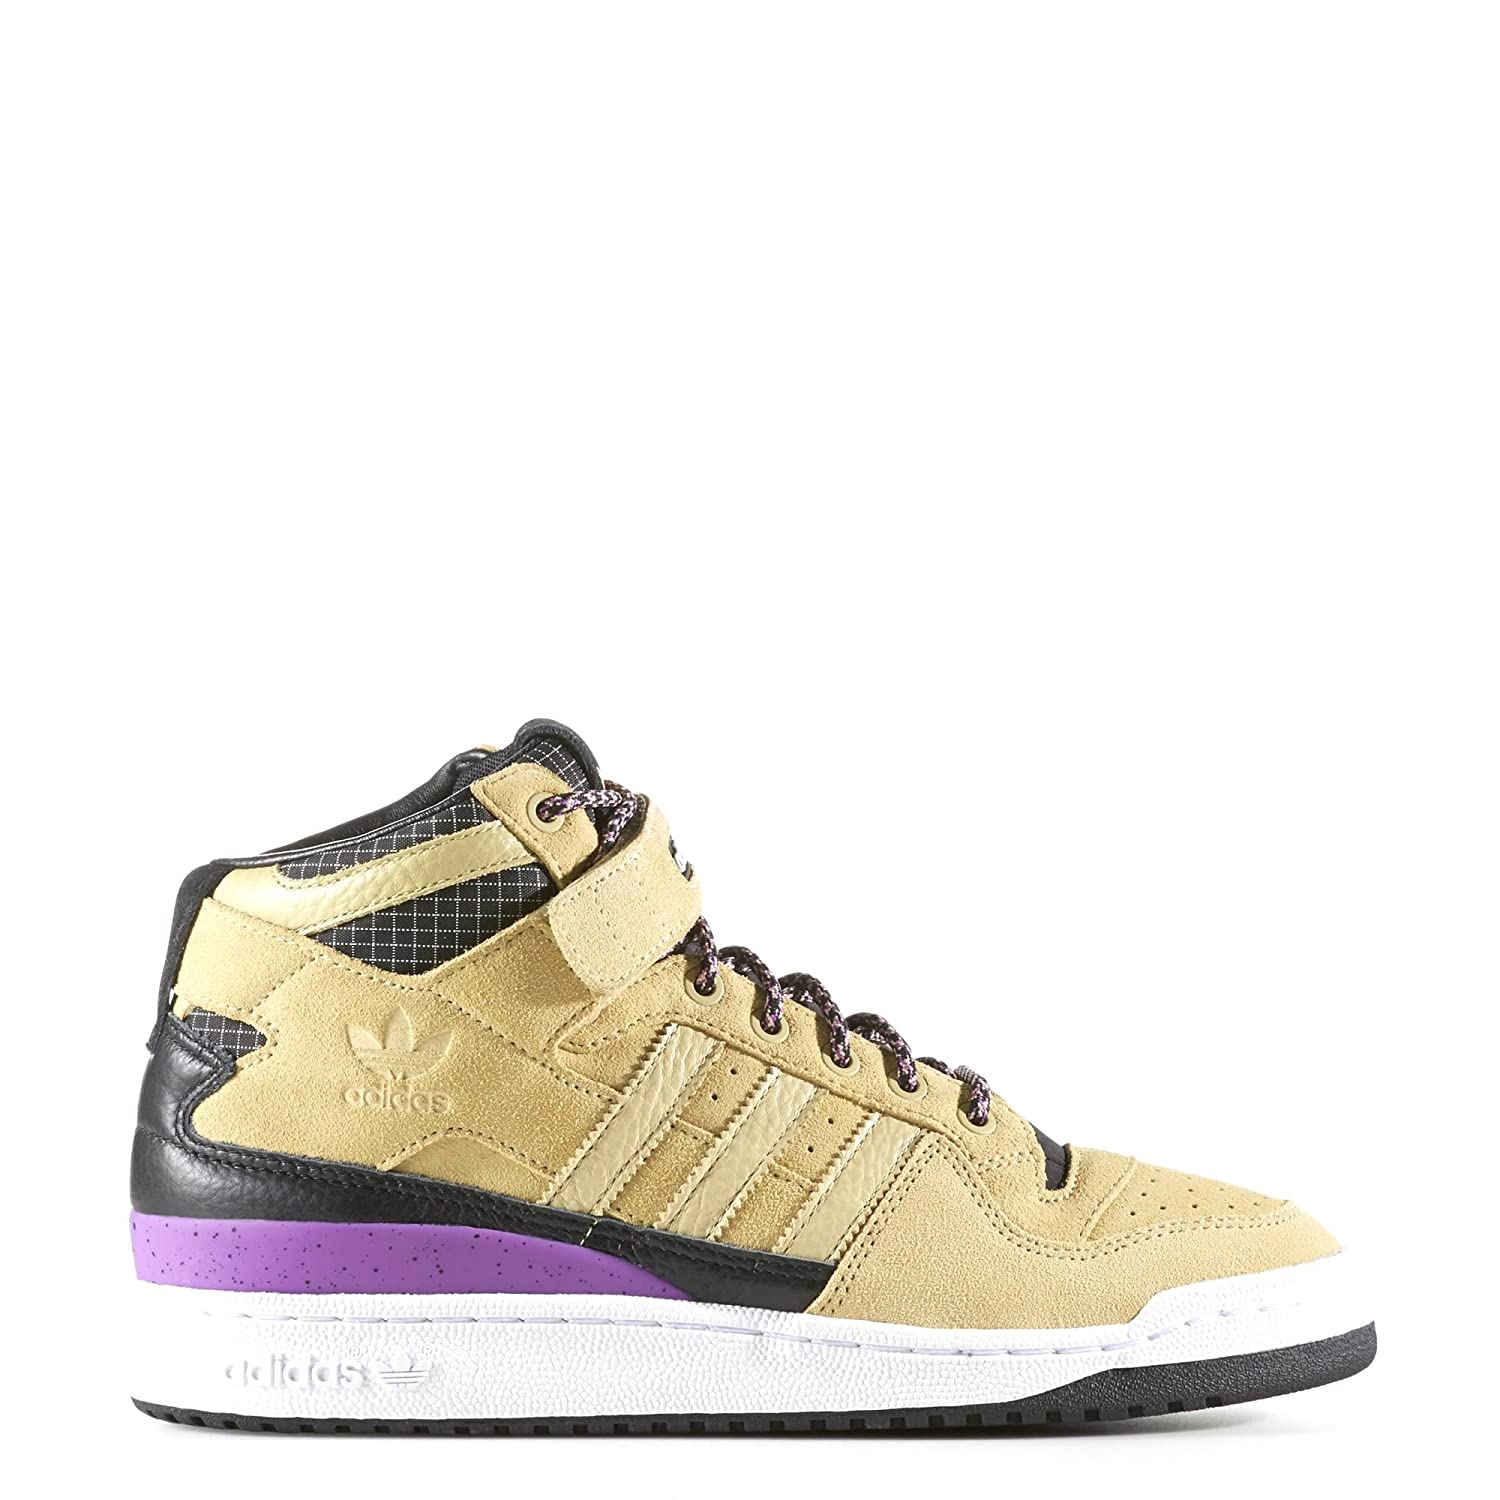 adidas Men's Forum MID Refined Sand/Black/White F37834